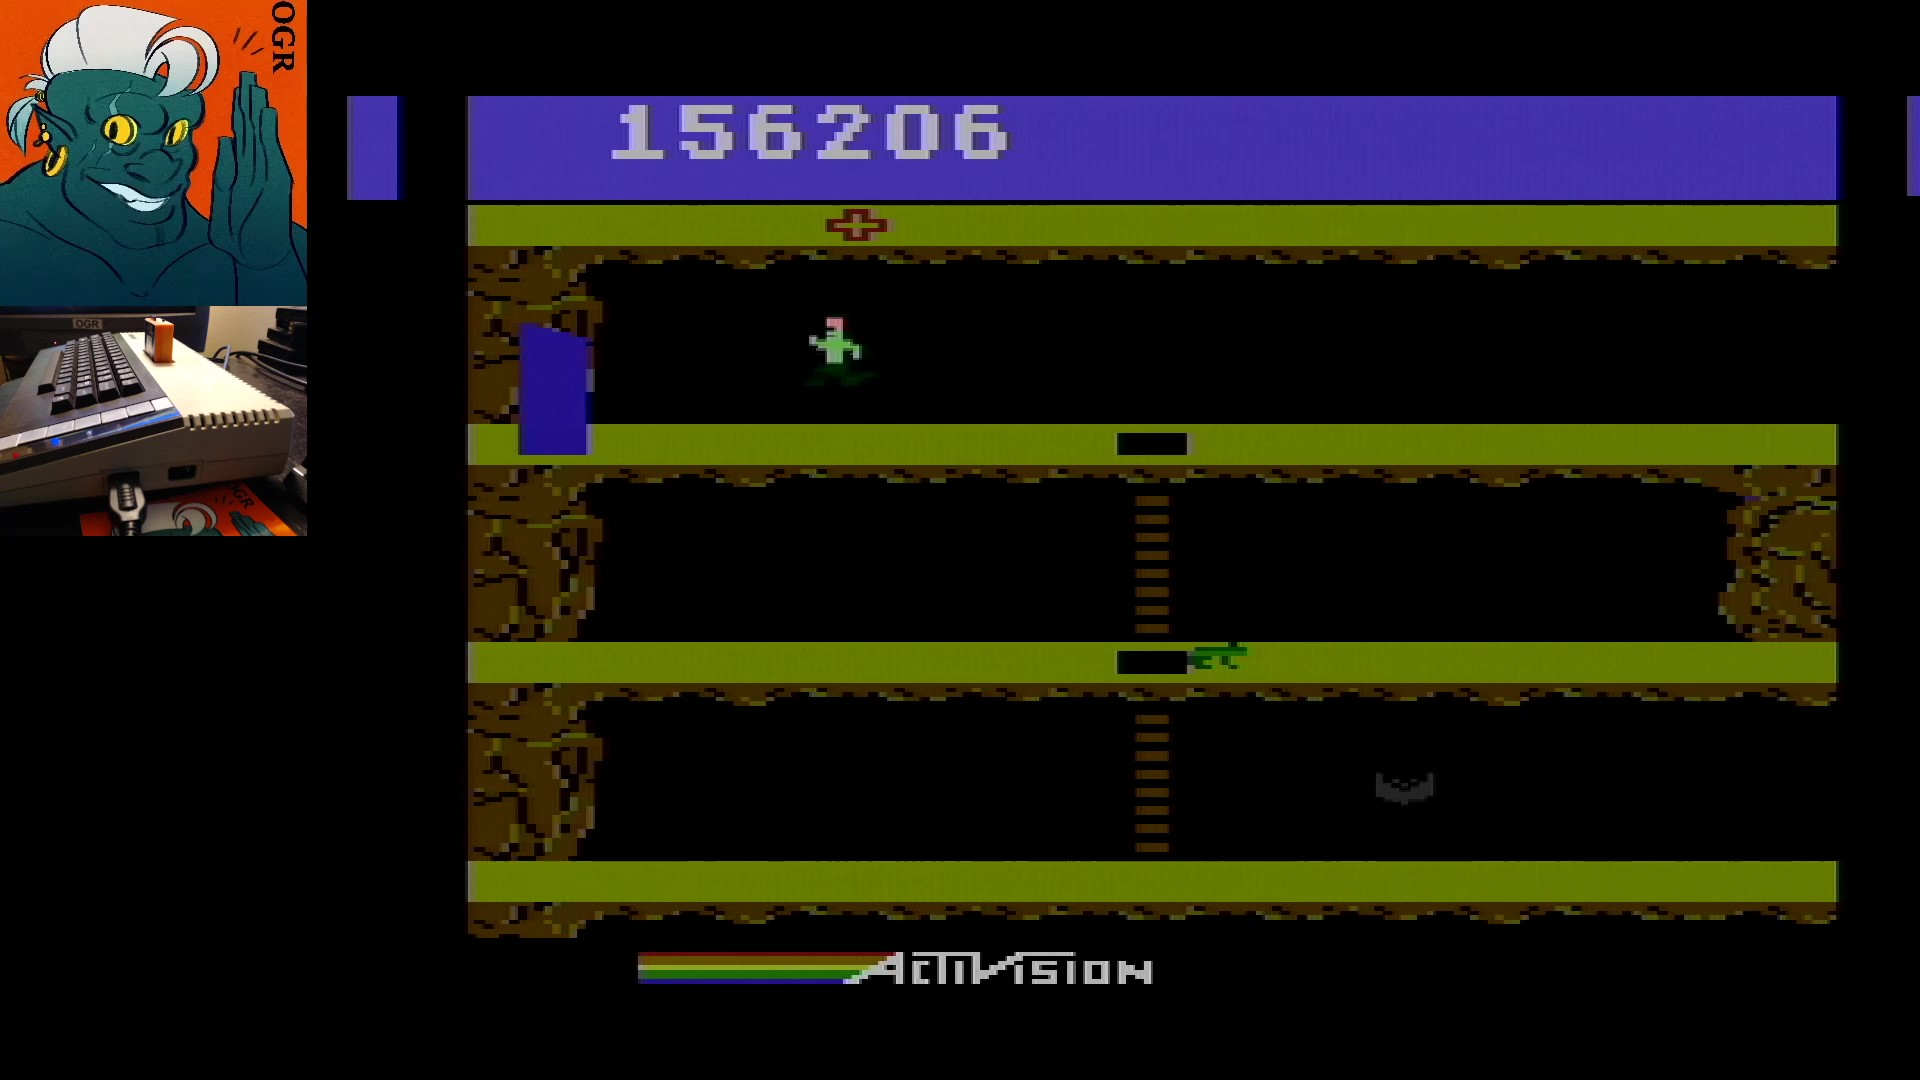 AwesomeOgre: Pitfall II (Atari 400/800/XL/XE) 156,206 points on 2020-02-01 14:00:43